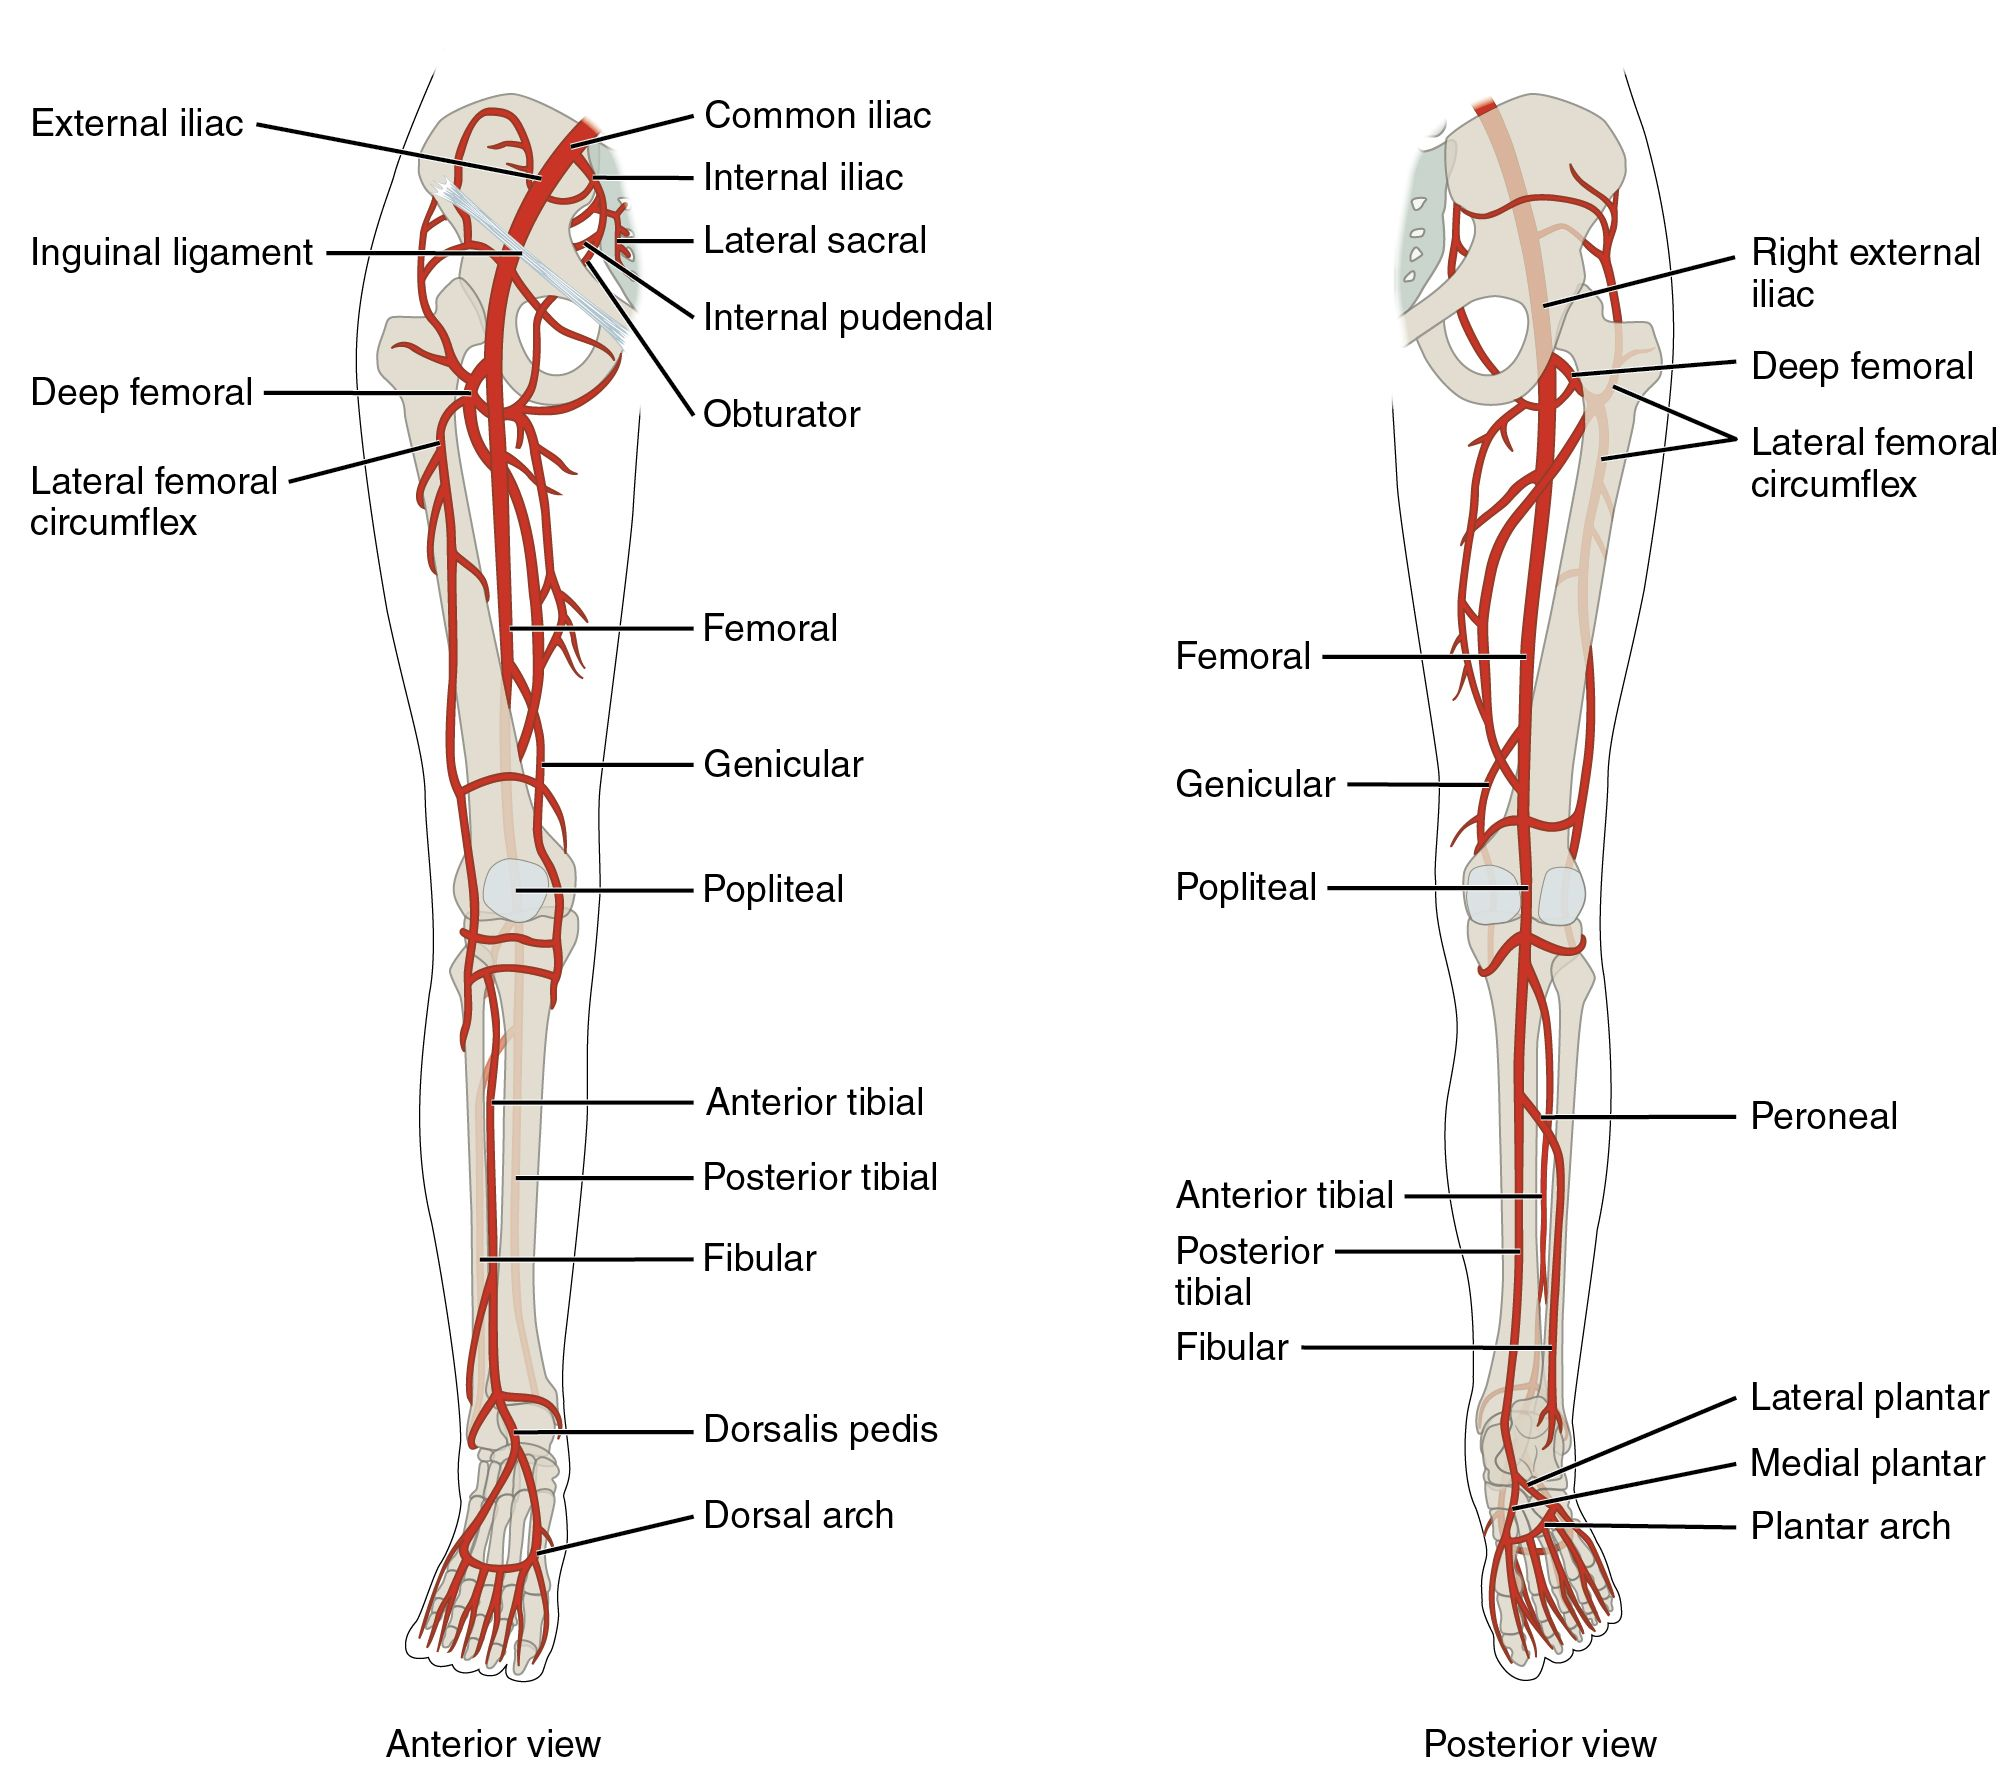 Vascular Anatomy Diagram Lower E Bike Controller Wiring Of Arteries In The Legs And Right Panel Shows